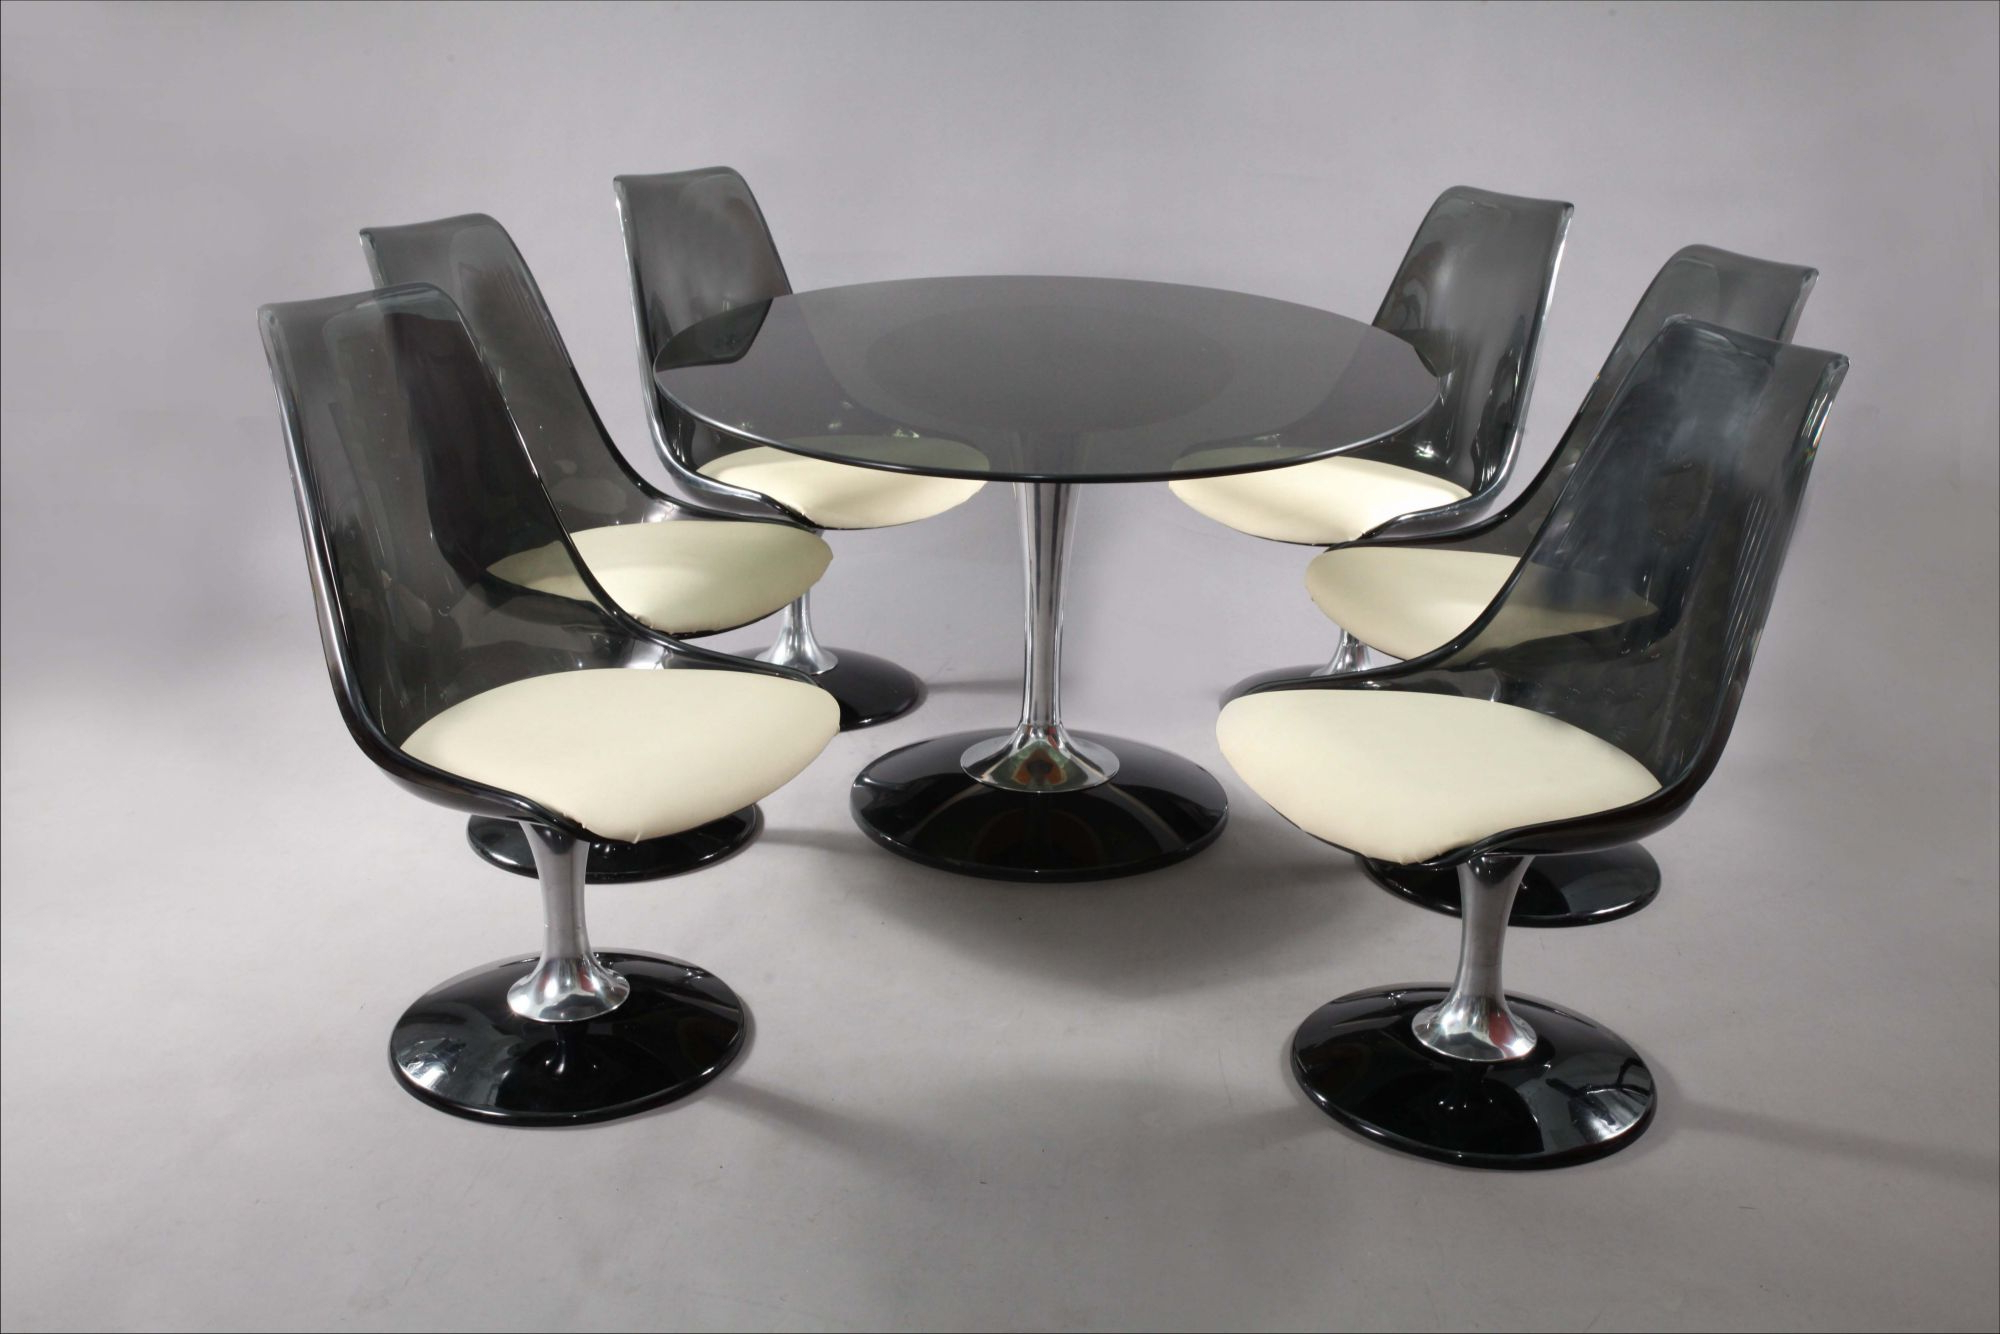 Fashionable Chromcraft Smoke Lucite Dining Set: Six Swiveling Tulip Intended For Smoked Oval Glasstop Dining Tables (View 23 of 25)